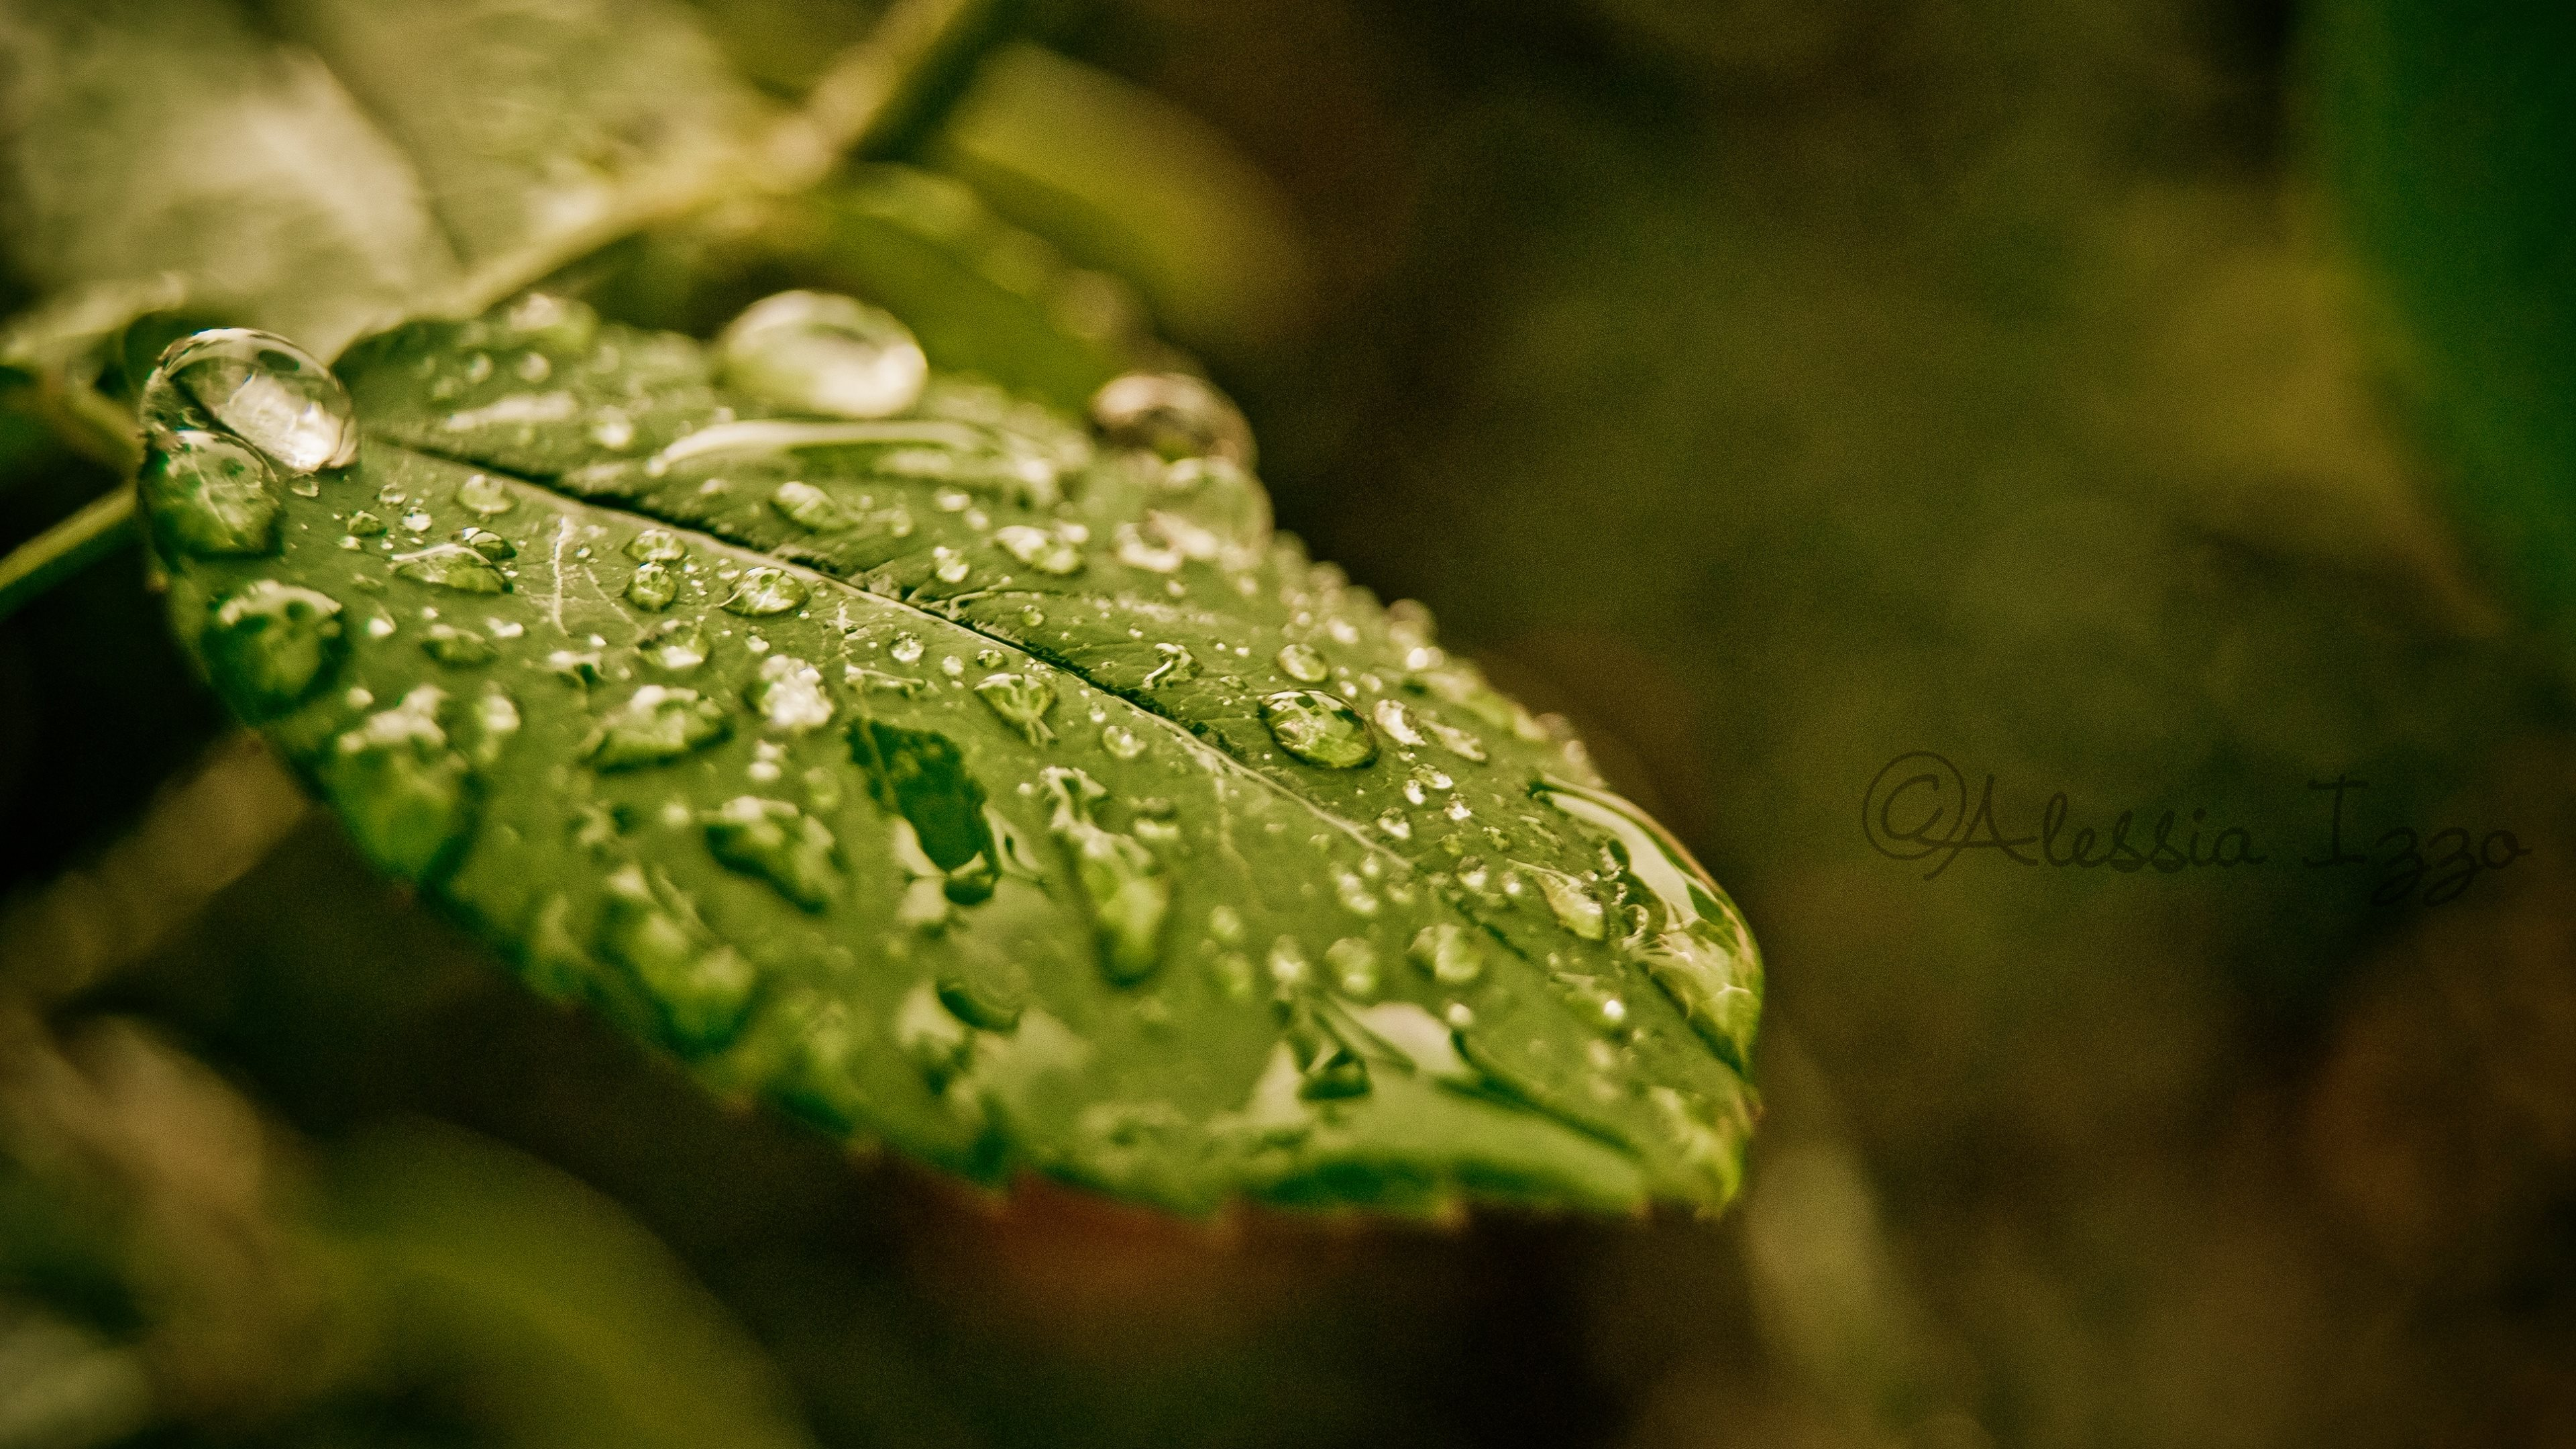 droplets on leaves 4k - photo #35